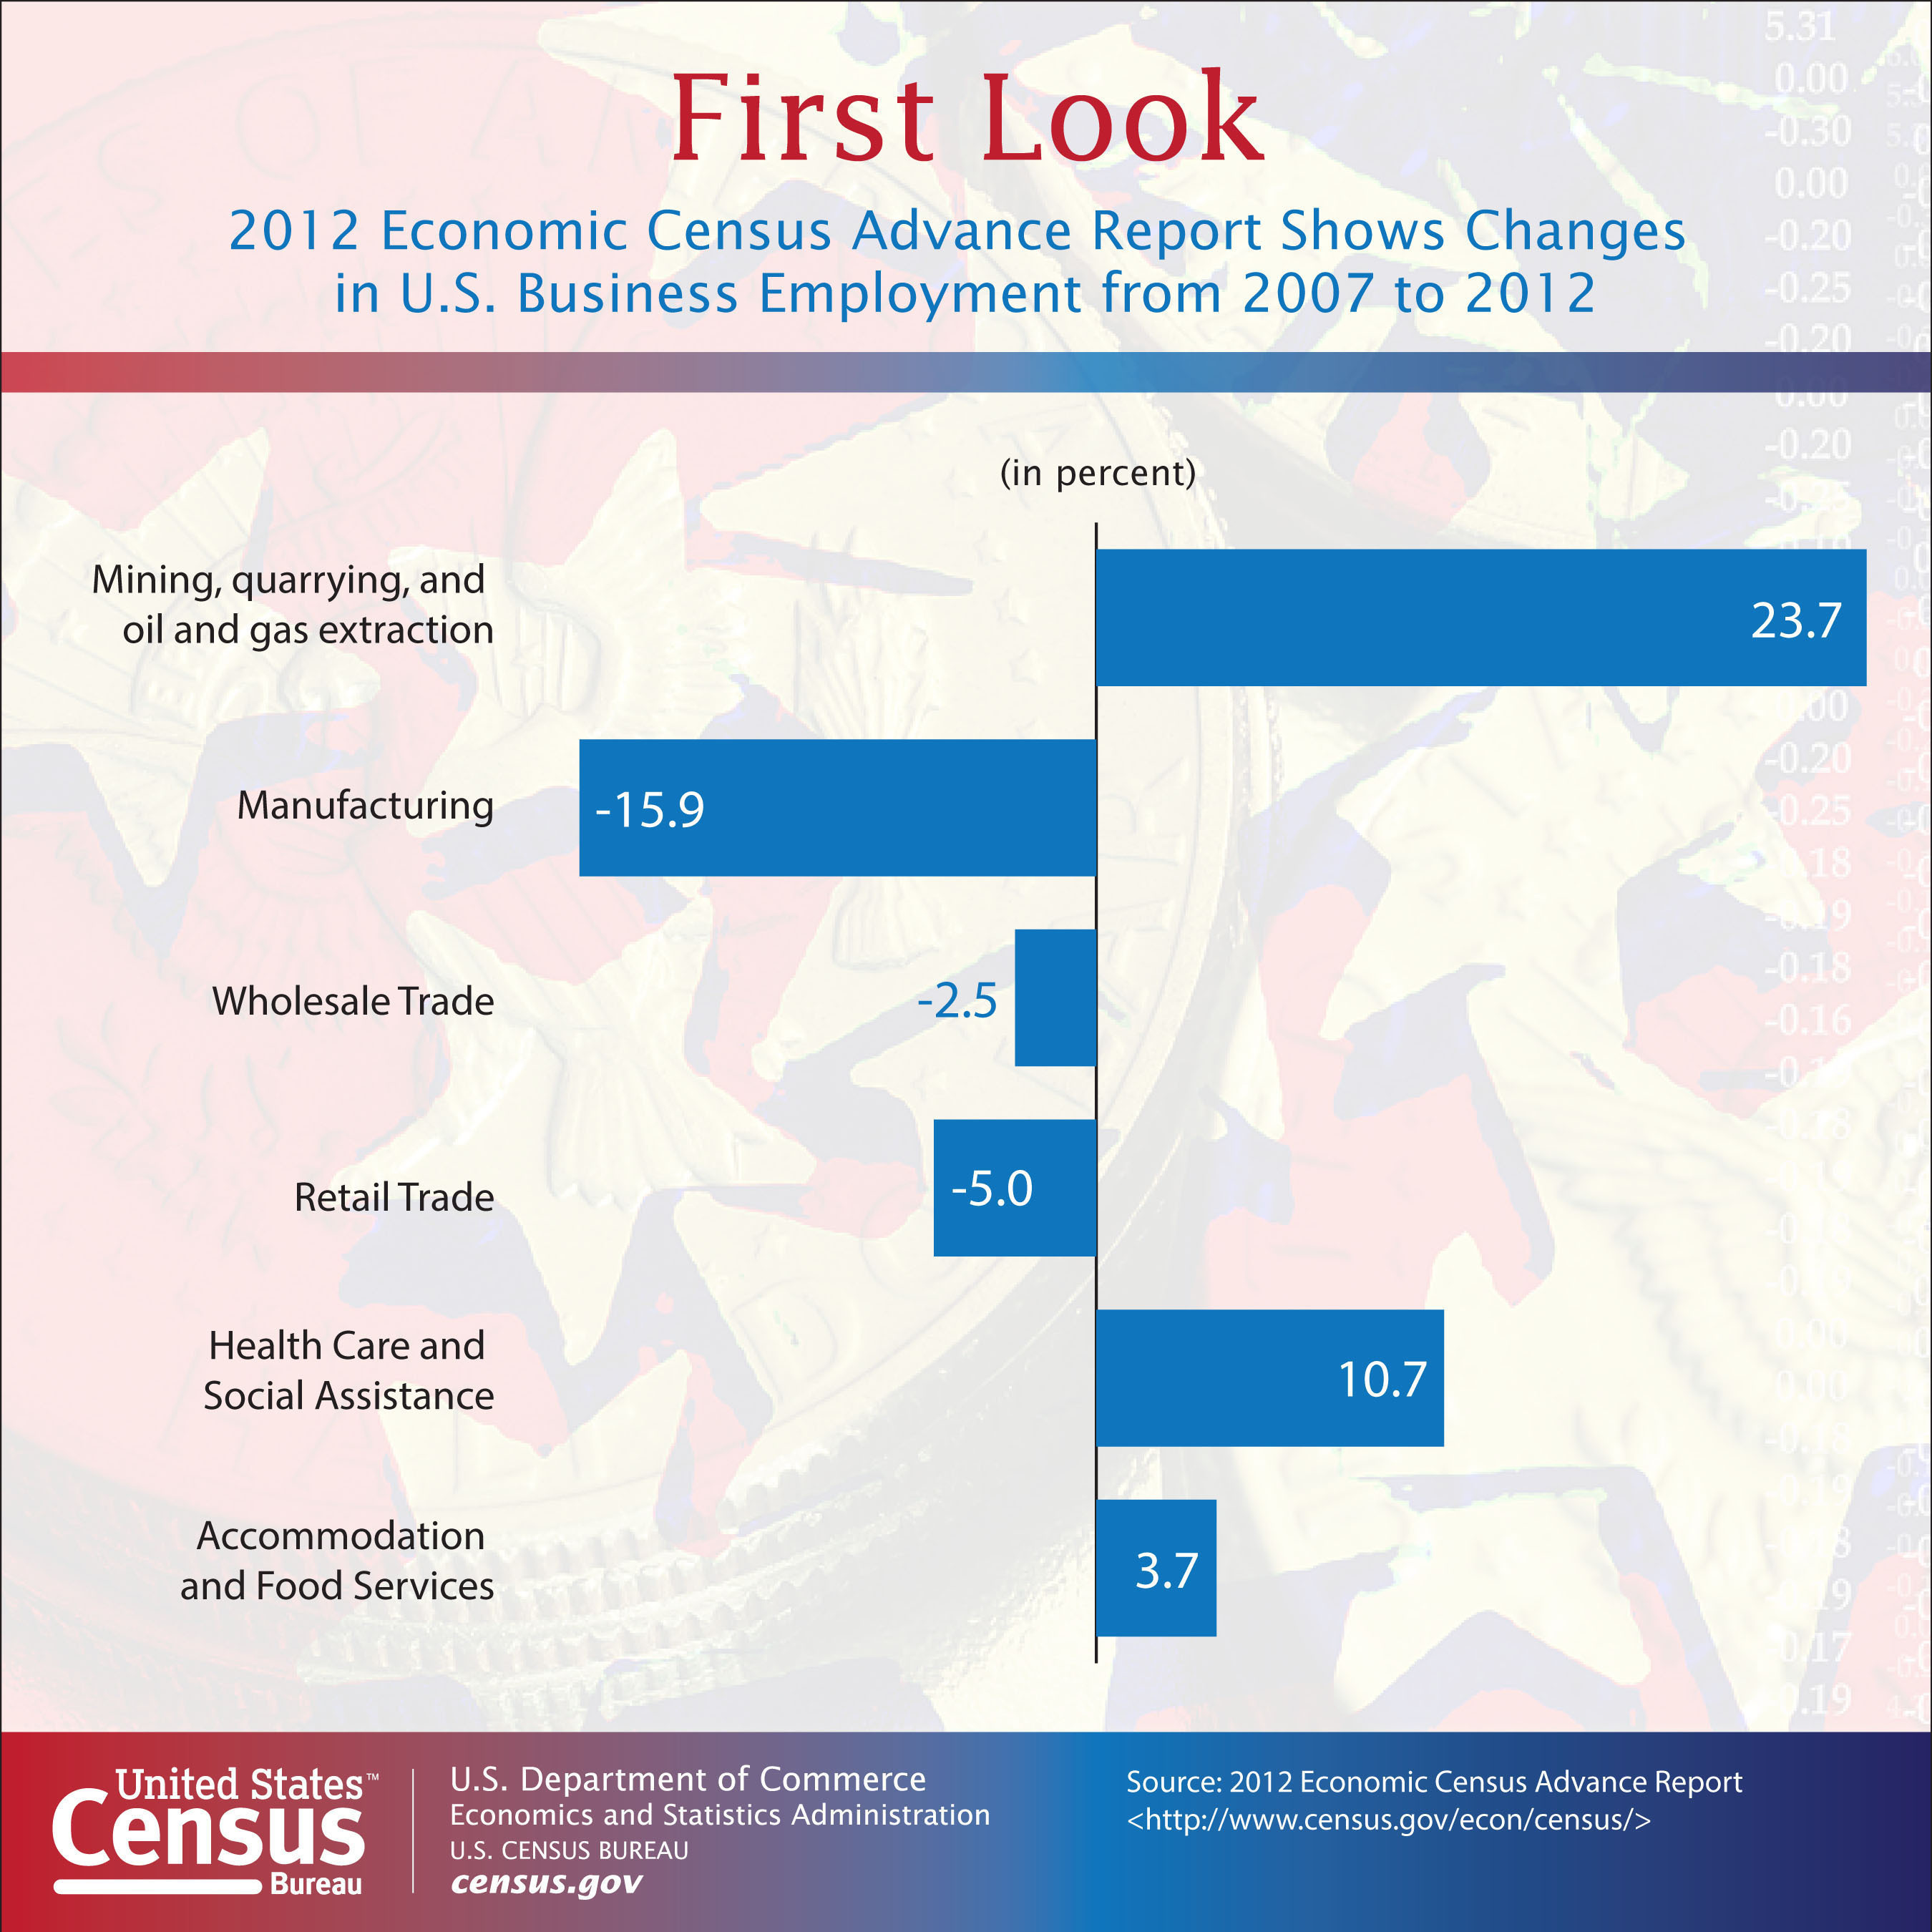 According to the U.S. Census Bureau, employment rose in a number of sectors of the economy between the 2007 and 2012 Economic Censuses, including by 23.7 percent in mining, quarrying, and oil and gas extraction, and 10.7 percent in health care and social assistance. Some sectors of the economy saw employment declines, however.  (PRNewsFoto/U.S. Census Bureau)